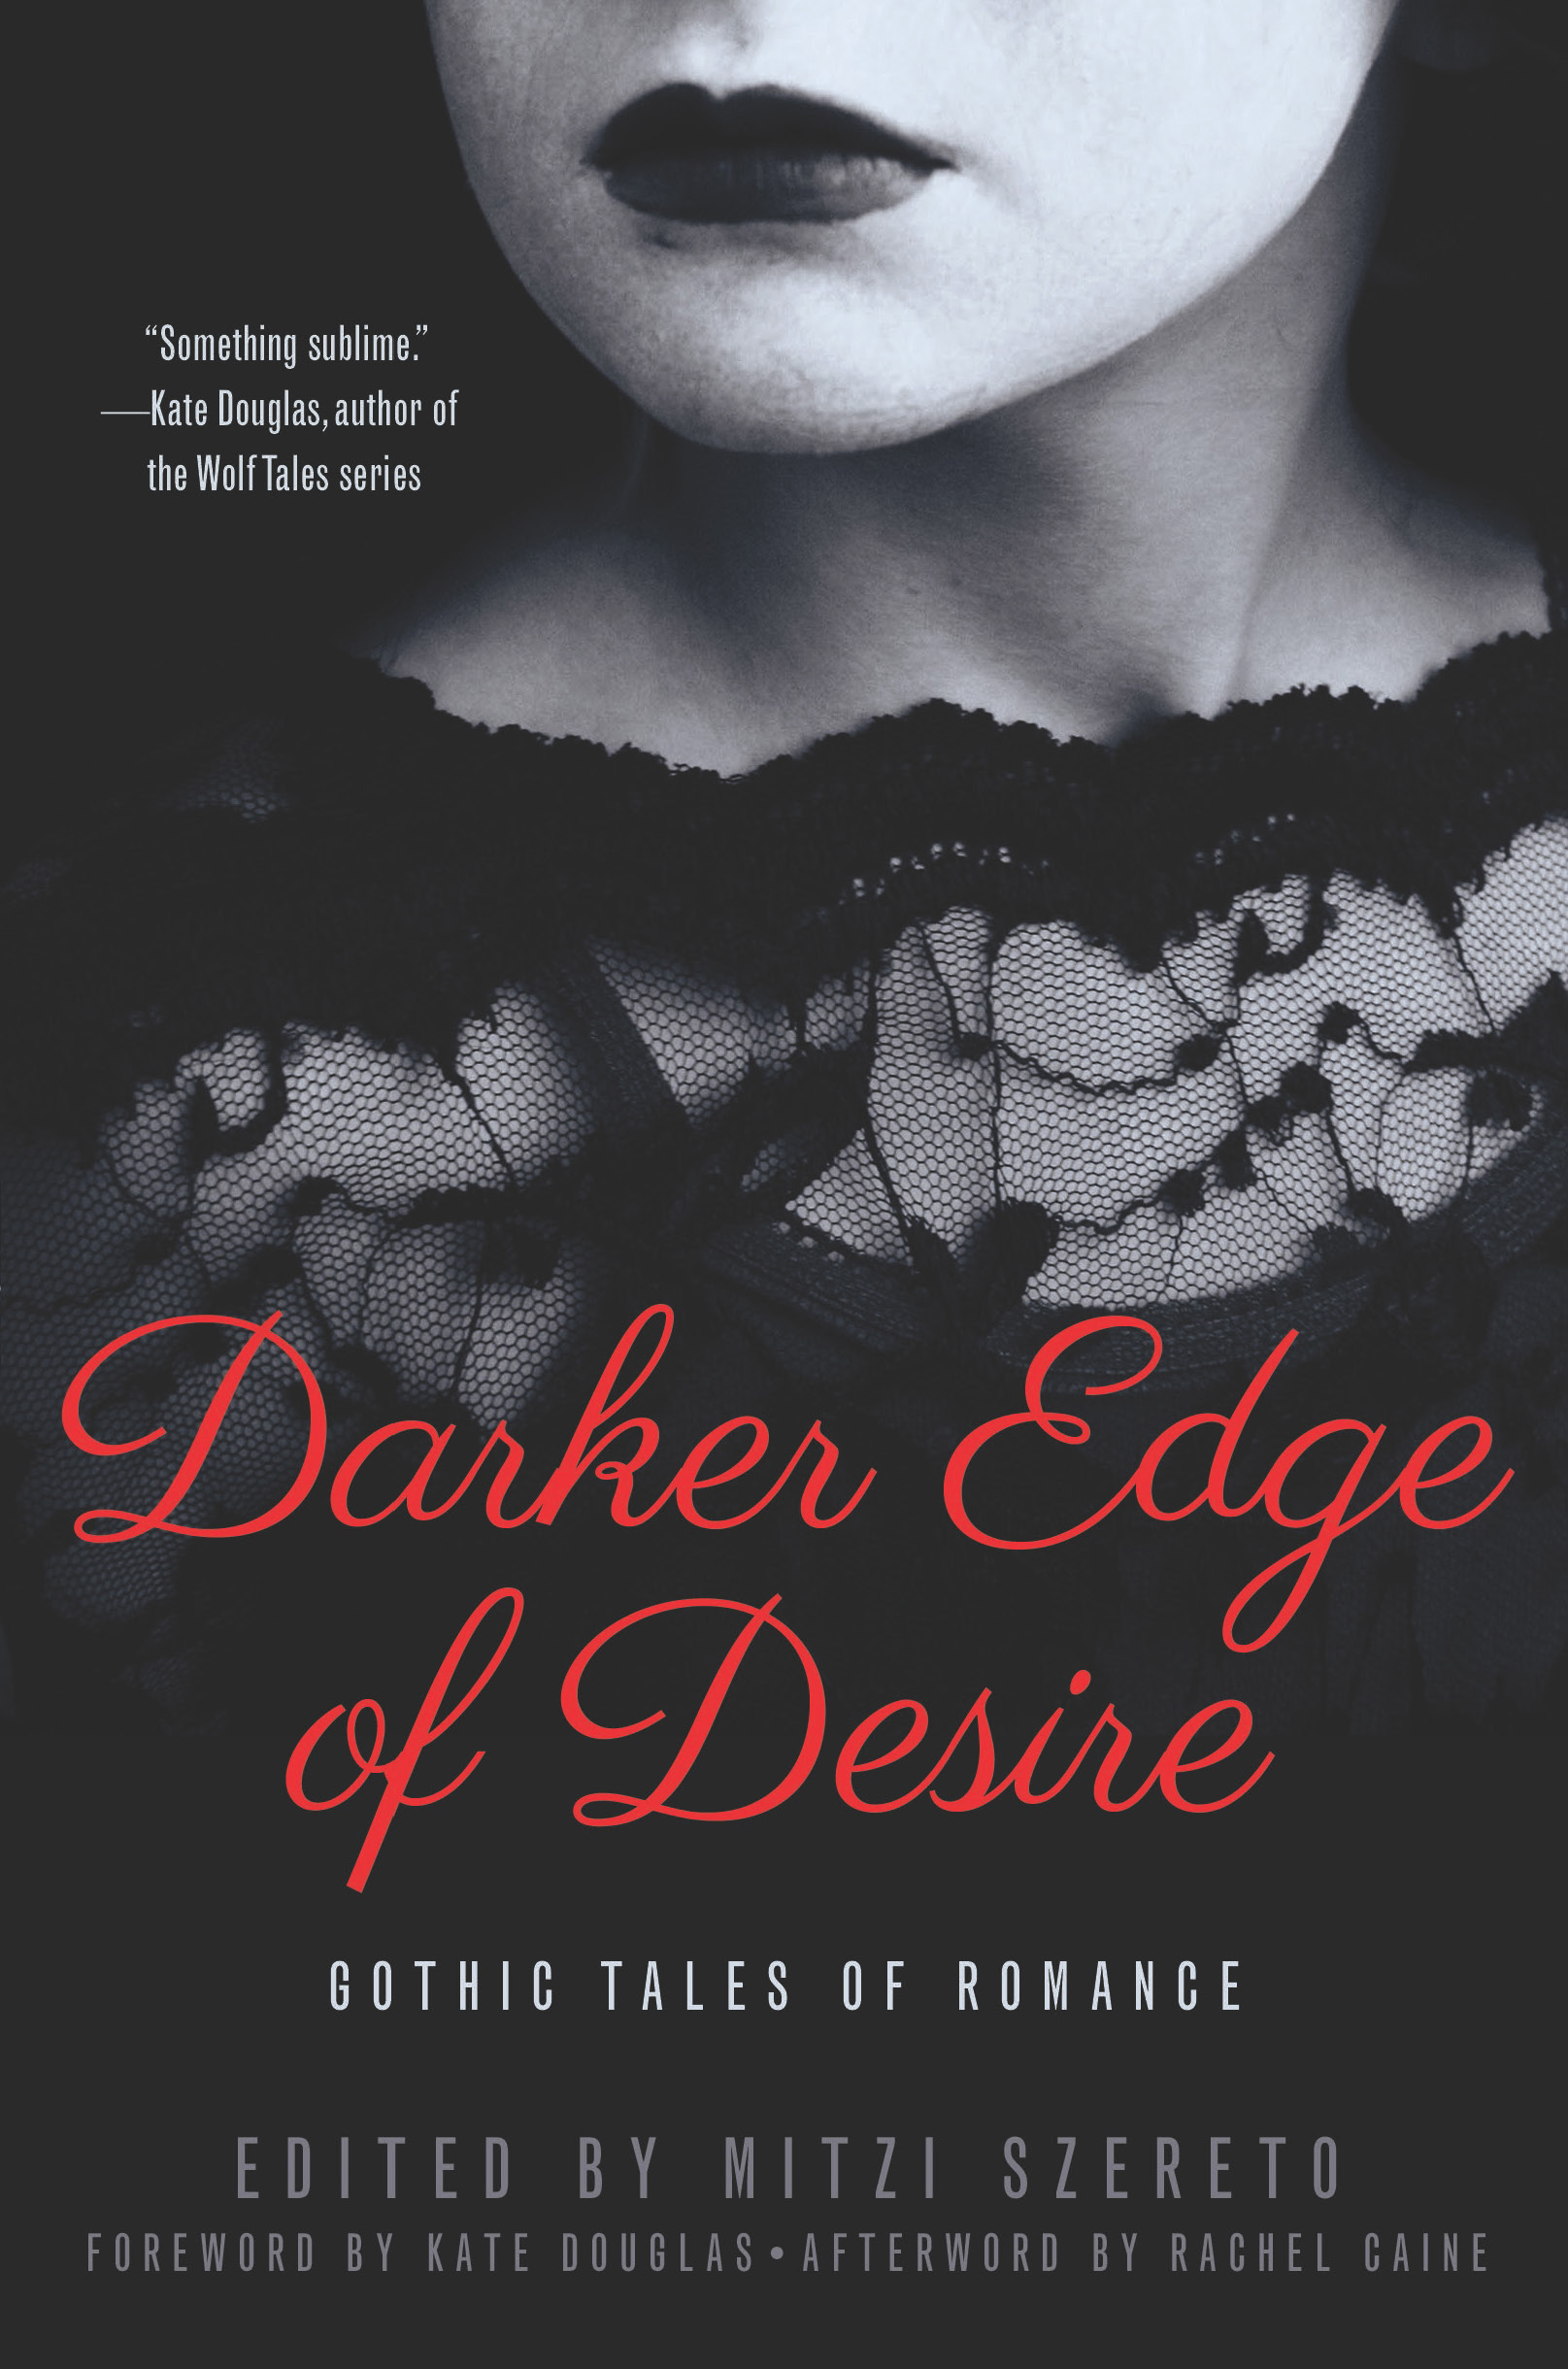 Darker Edge of Desire final cover